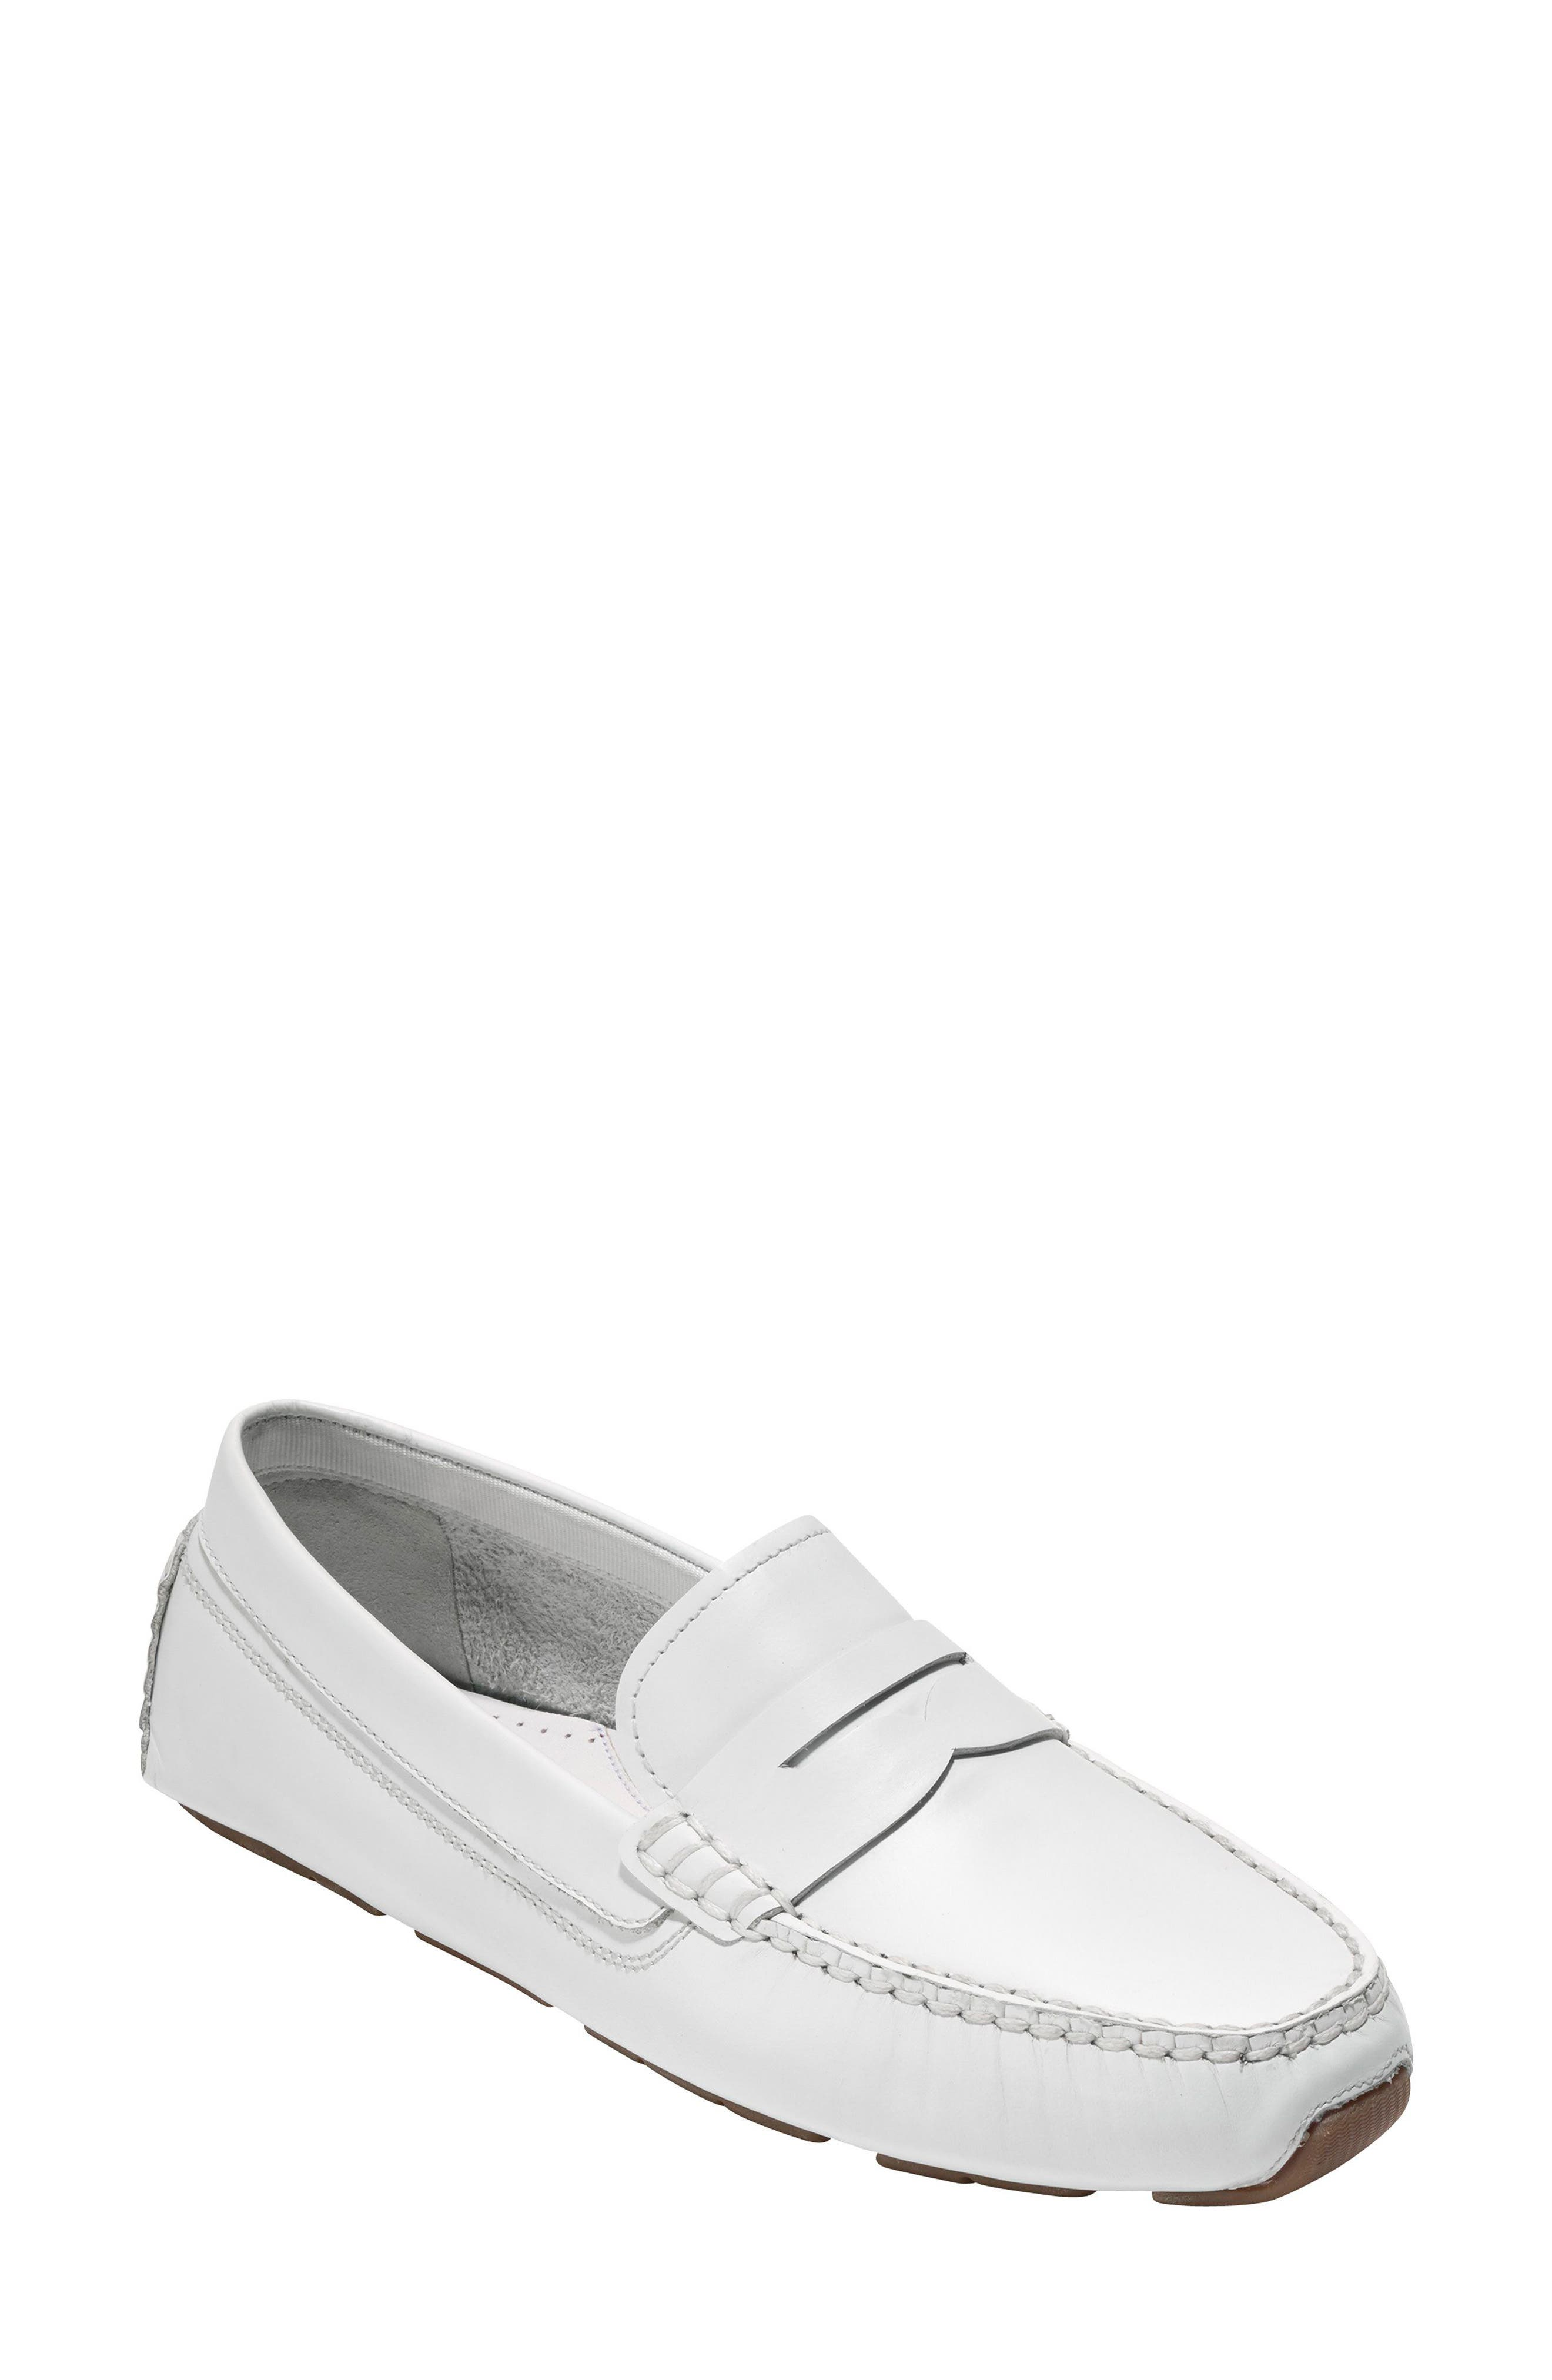 Rodeo Penny Driving Loafer,                             Main thumbnail 1, color,                             Optic White Leather